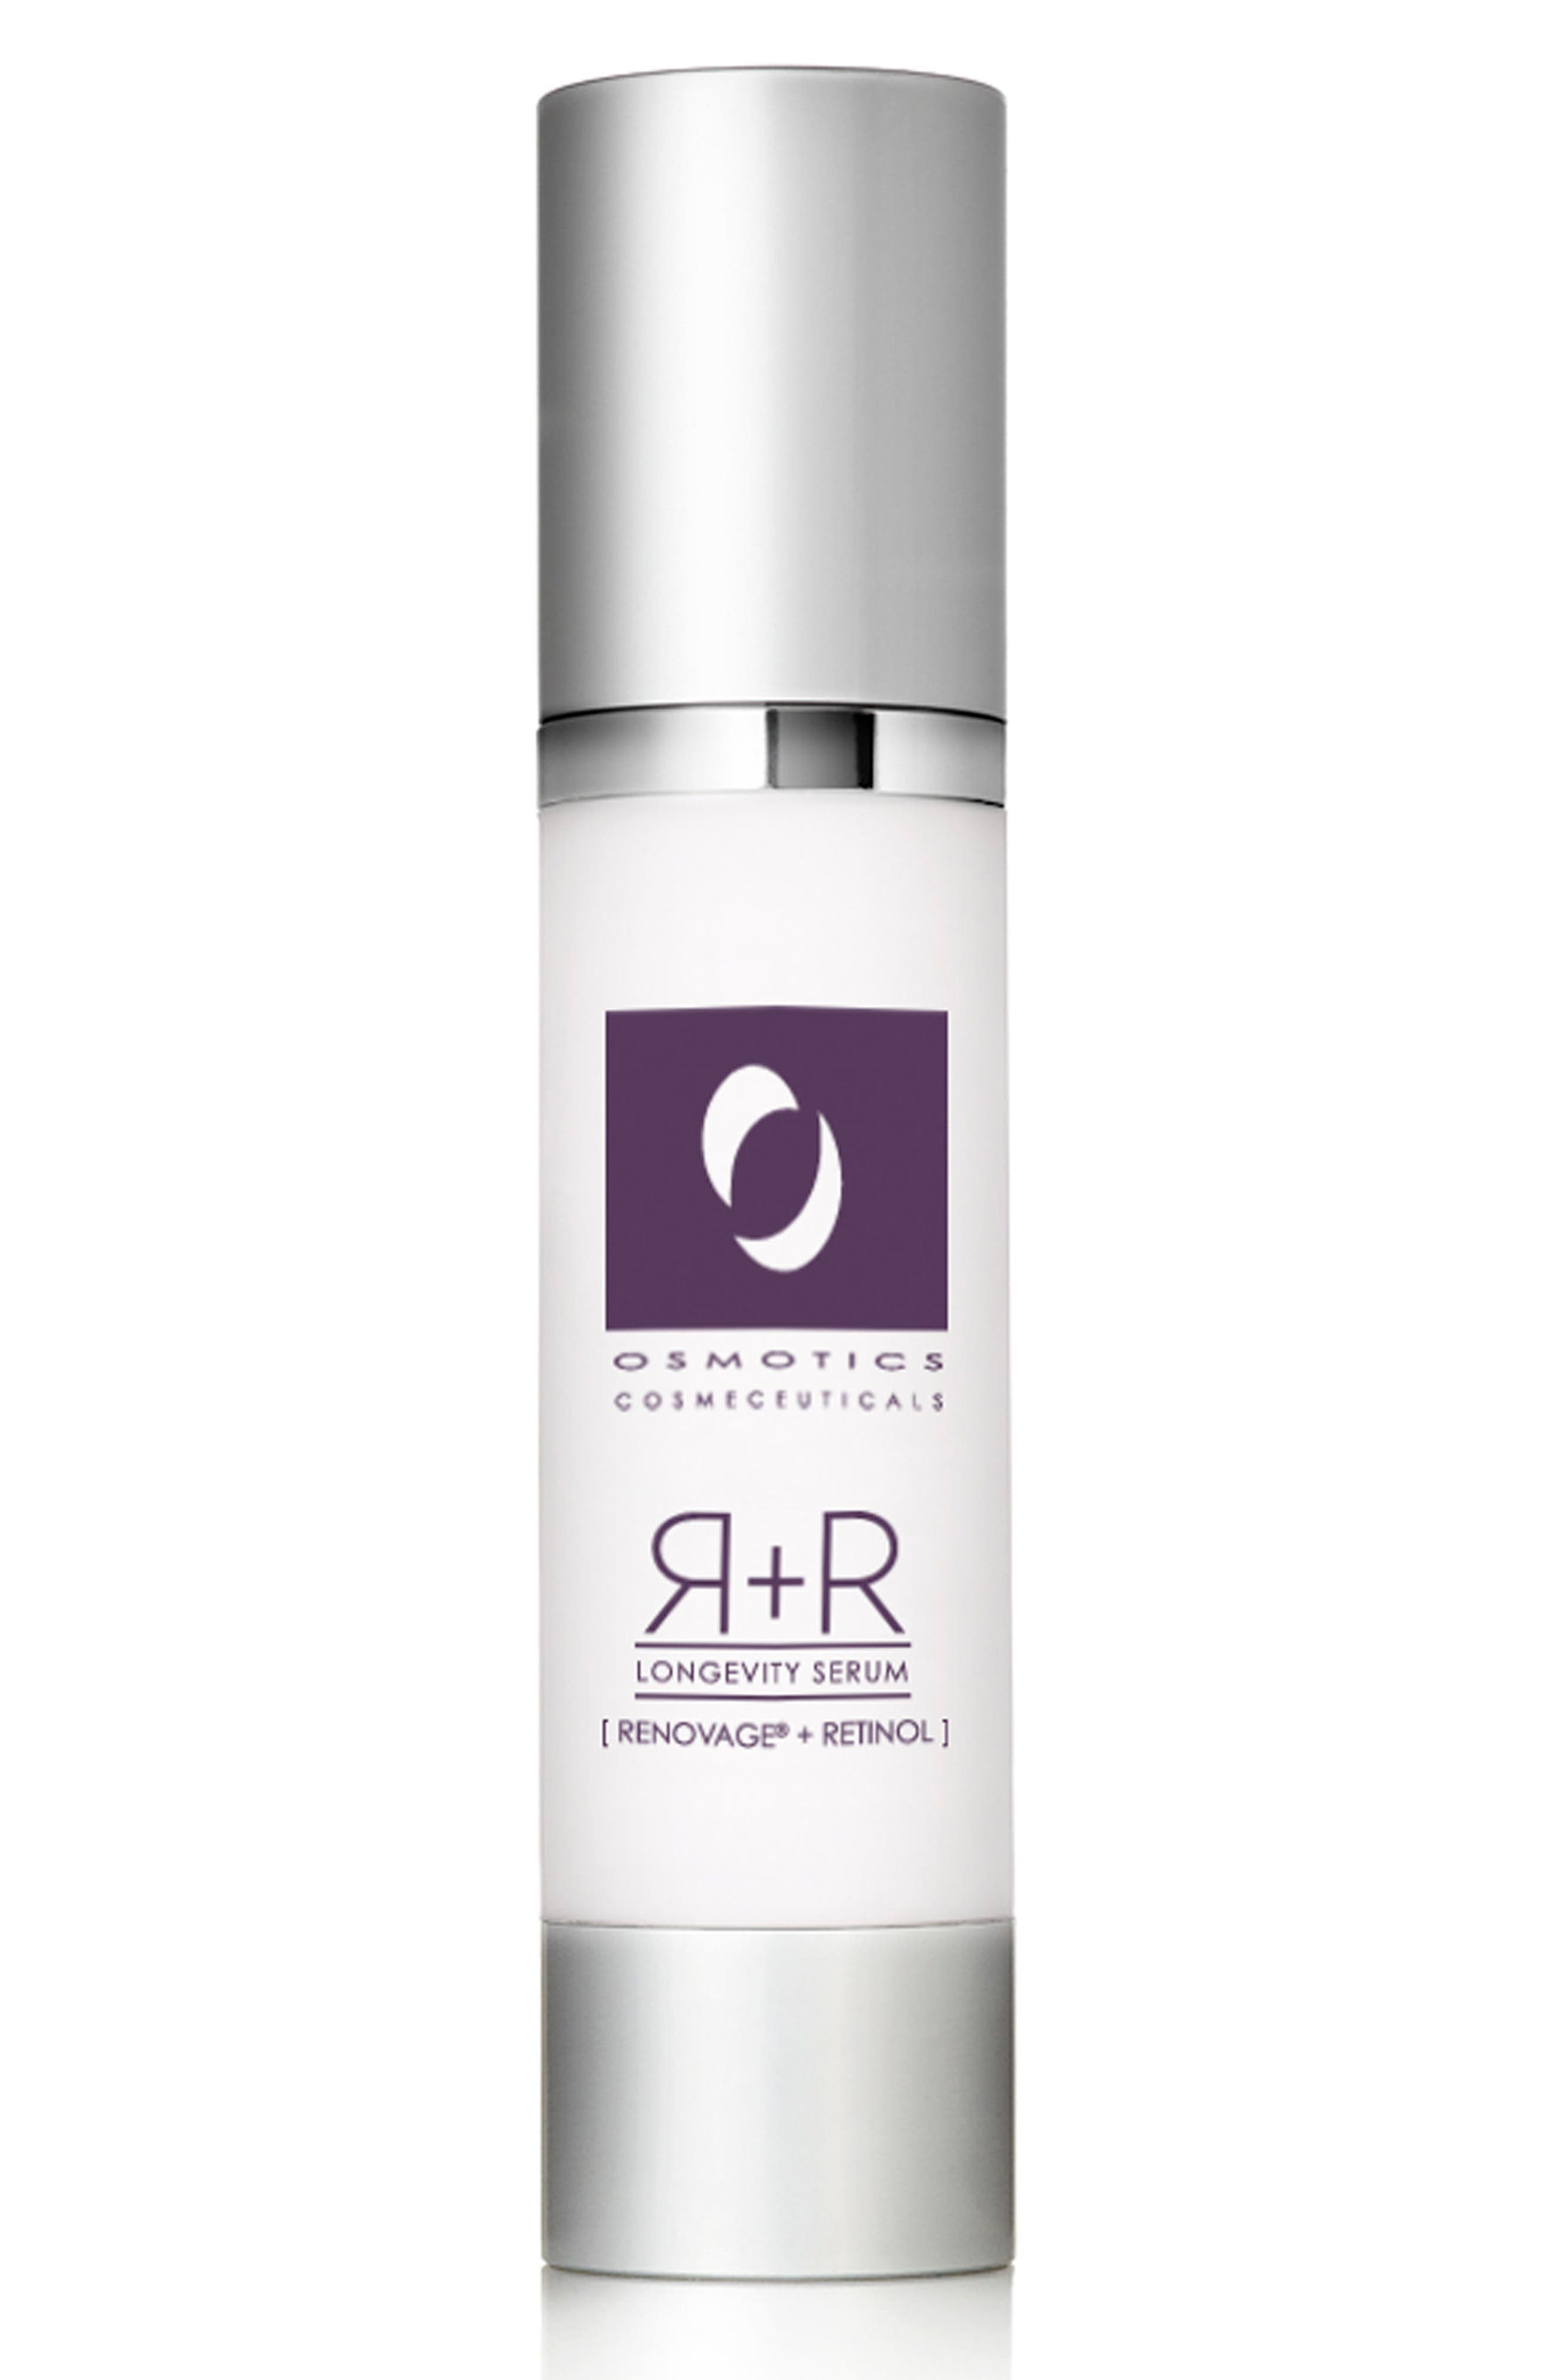 Osmotics Cosmeceuticals R+R Longevity Serum